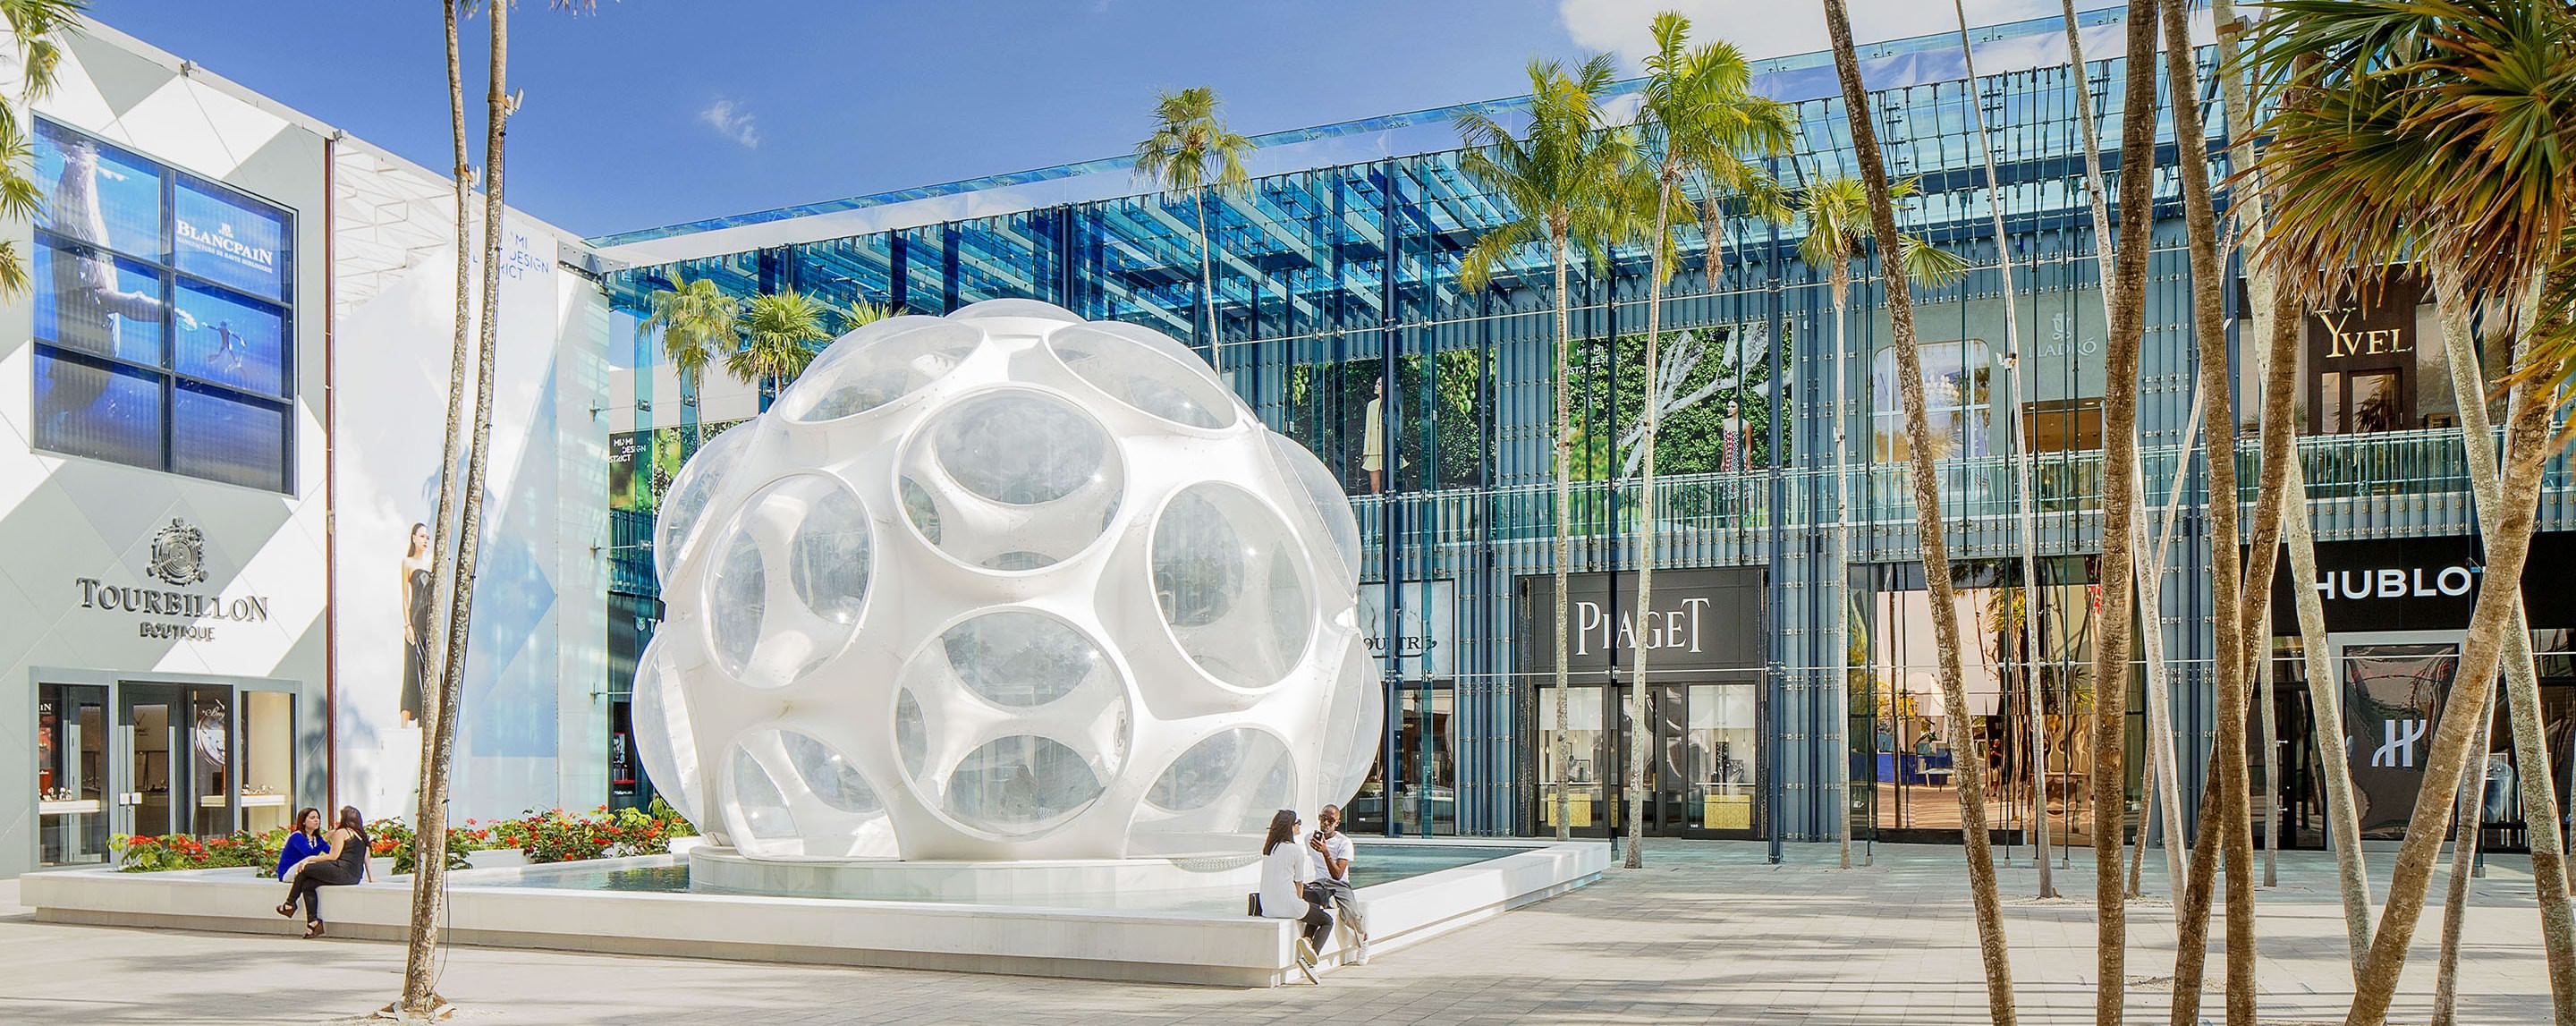 Outside a common area of the Miami Design District on a dunny day, palm tree line a sitting area with a decorative fountain.